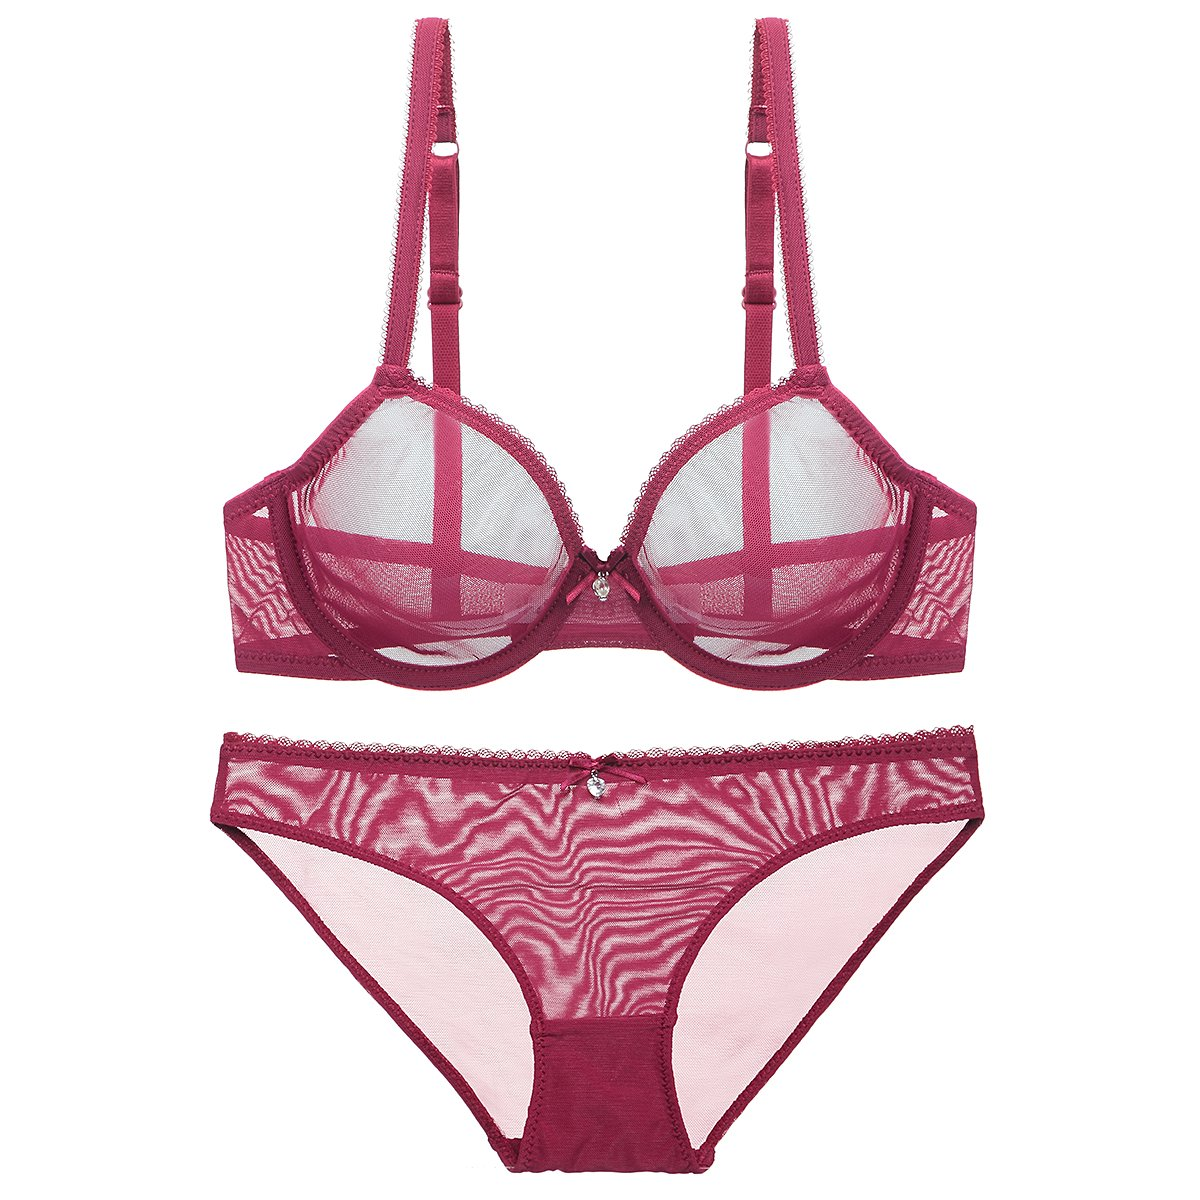 Bluewhalebaby Sexy Lingerie See-Through Transparent Breathable Lace Fine Mesh Fabric Push up Everyday Bra and Knicker Set for Women Red US Size 40D = Tag 42D